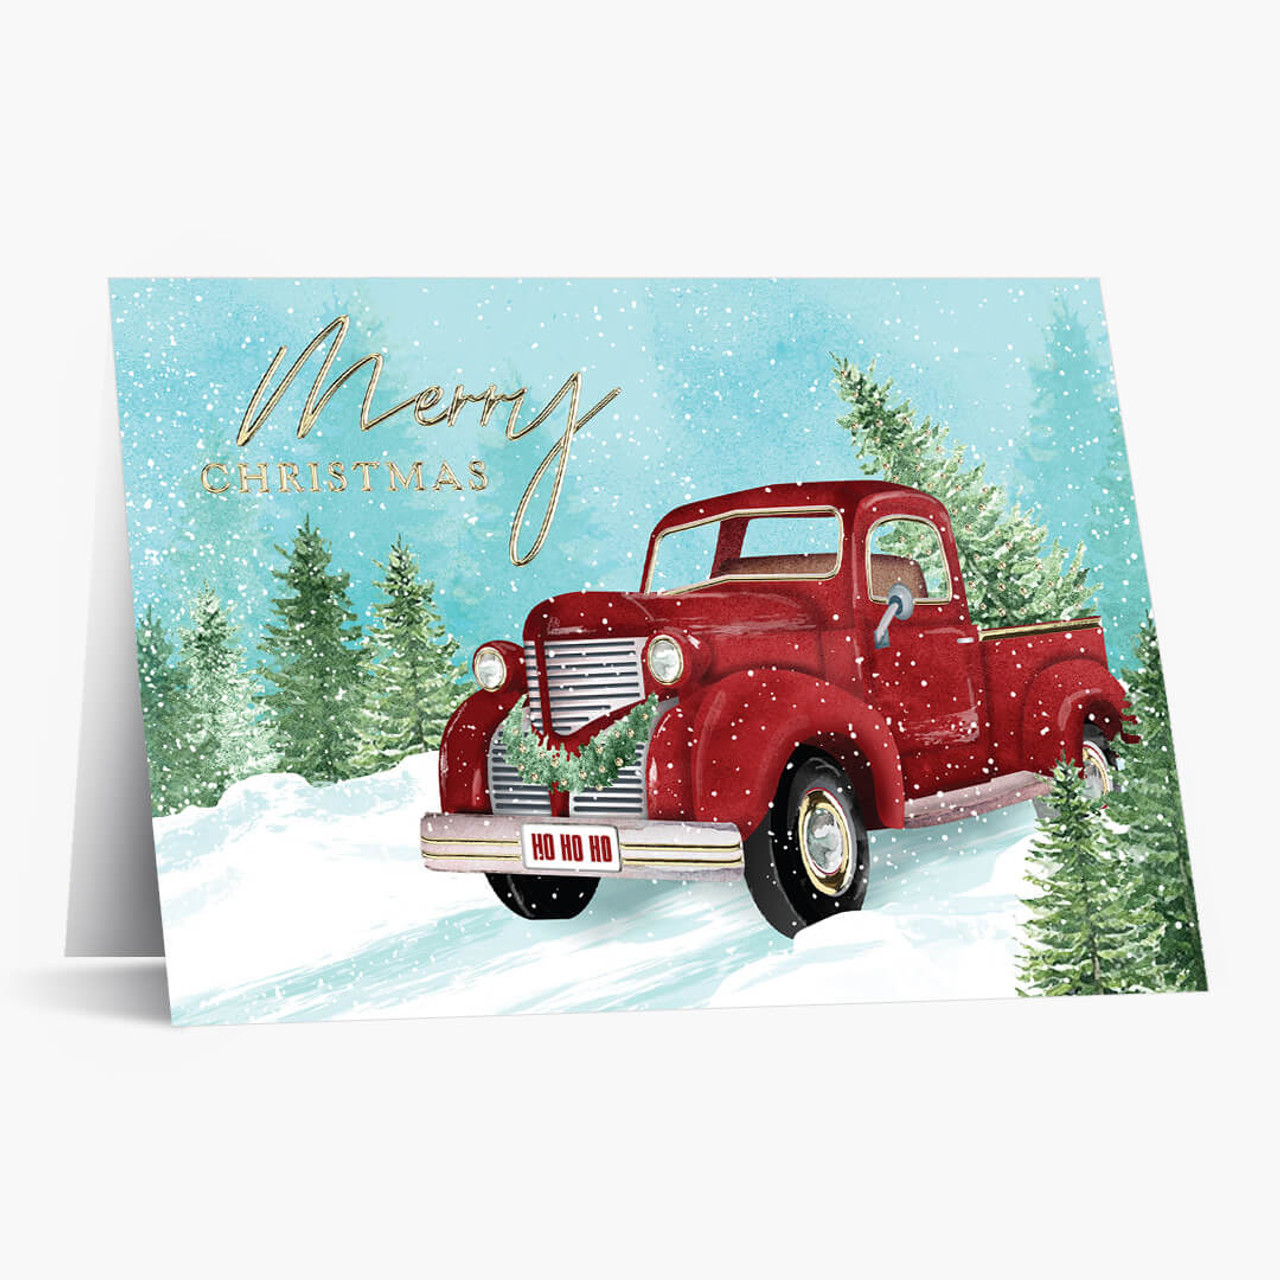 Winter Scene with Truck Christmas Card